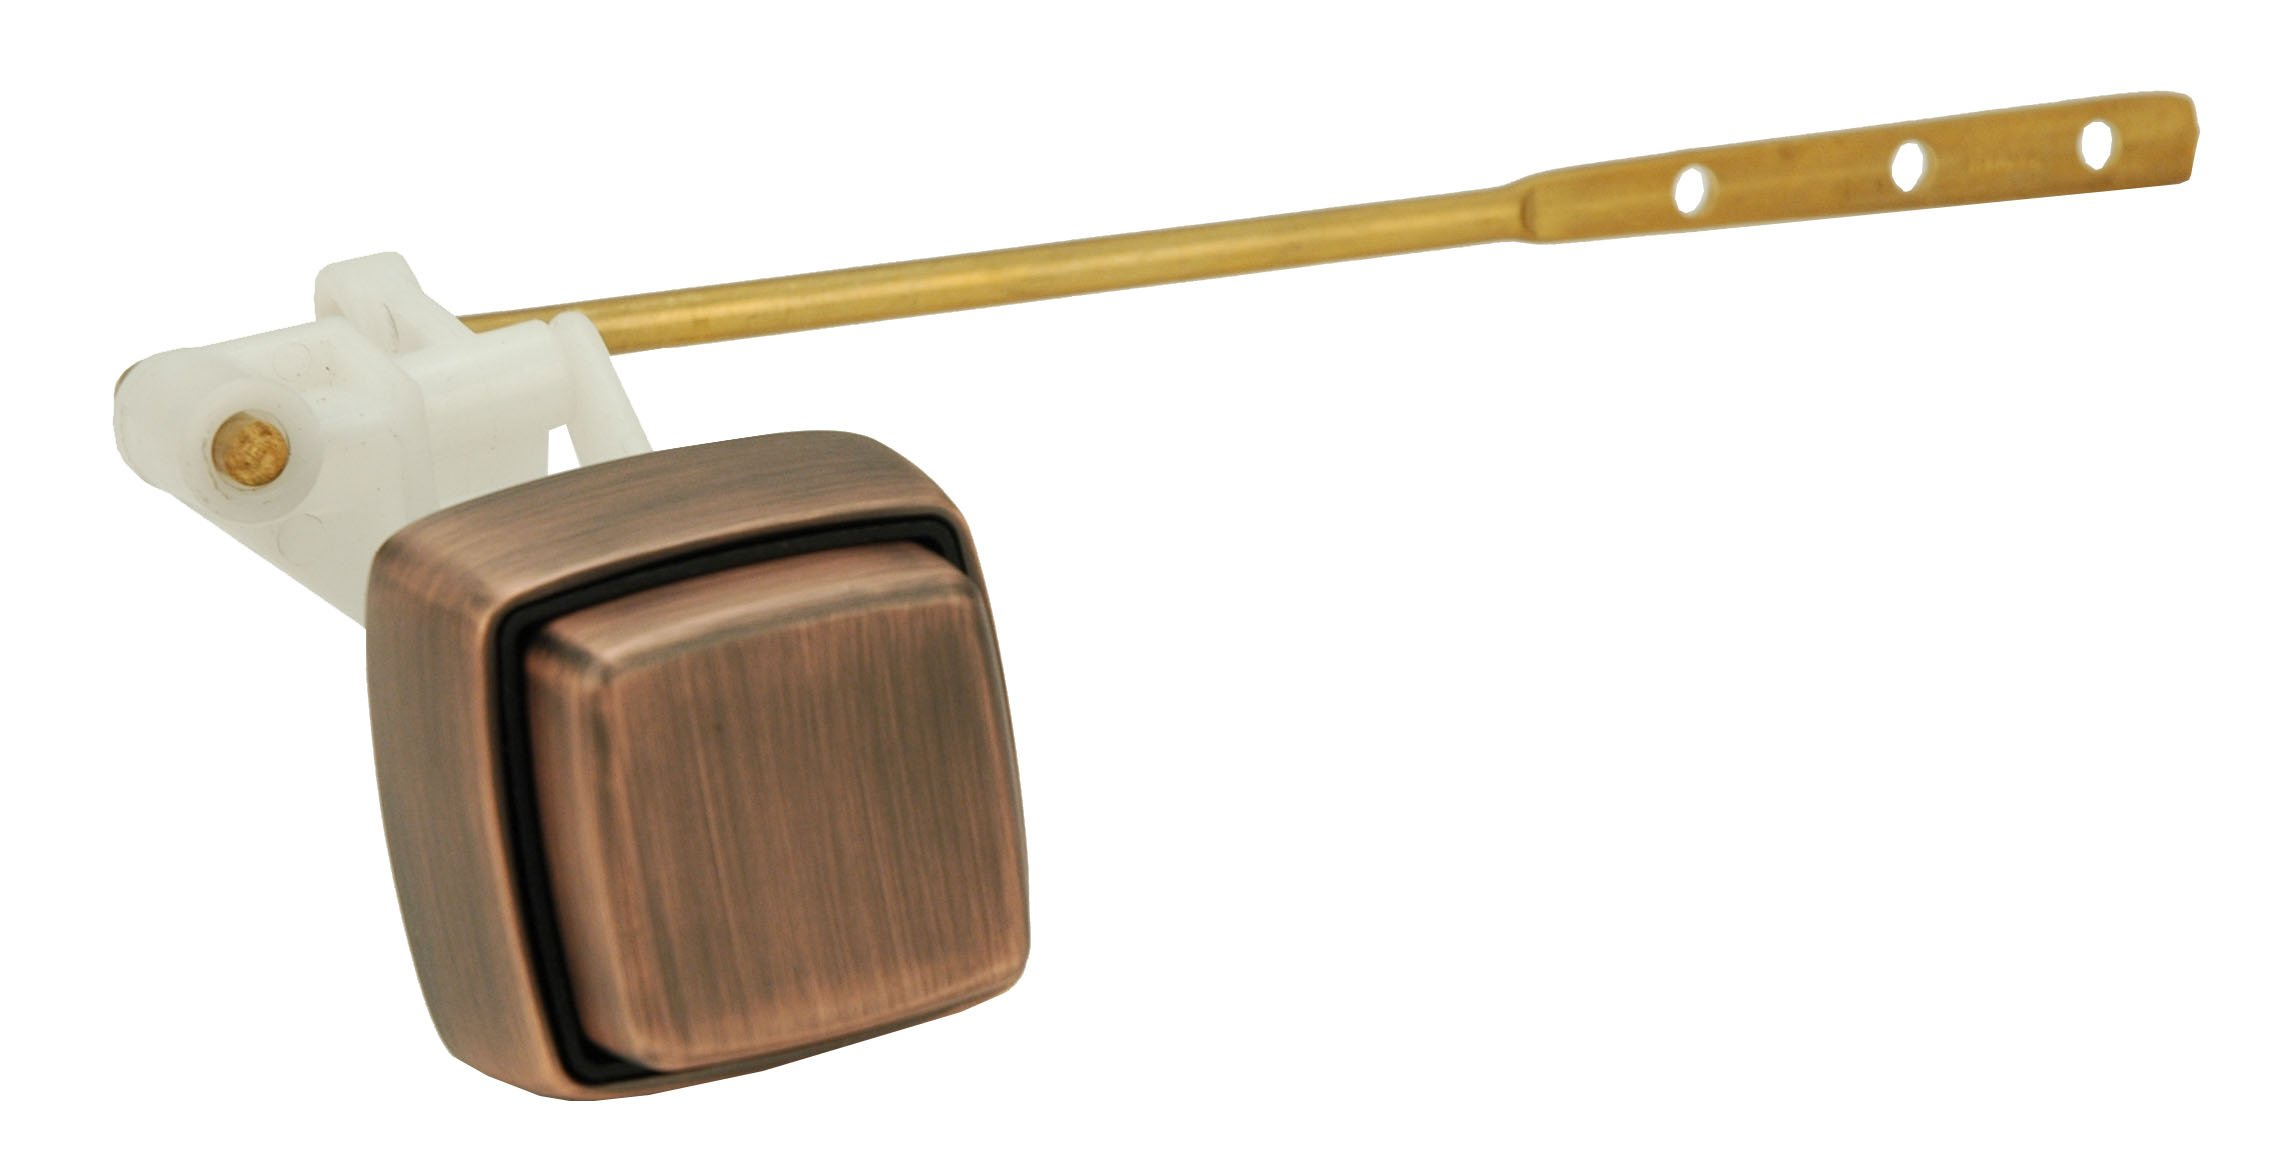 Toilet Tank Lever, Push-button Type, Front Mount, Antique Copper Finish - By Plumb USA 50722ROB